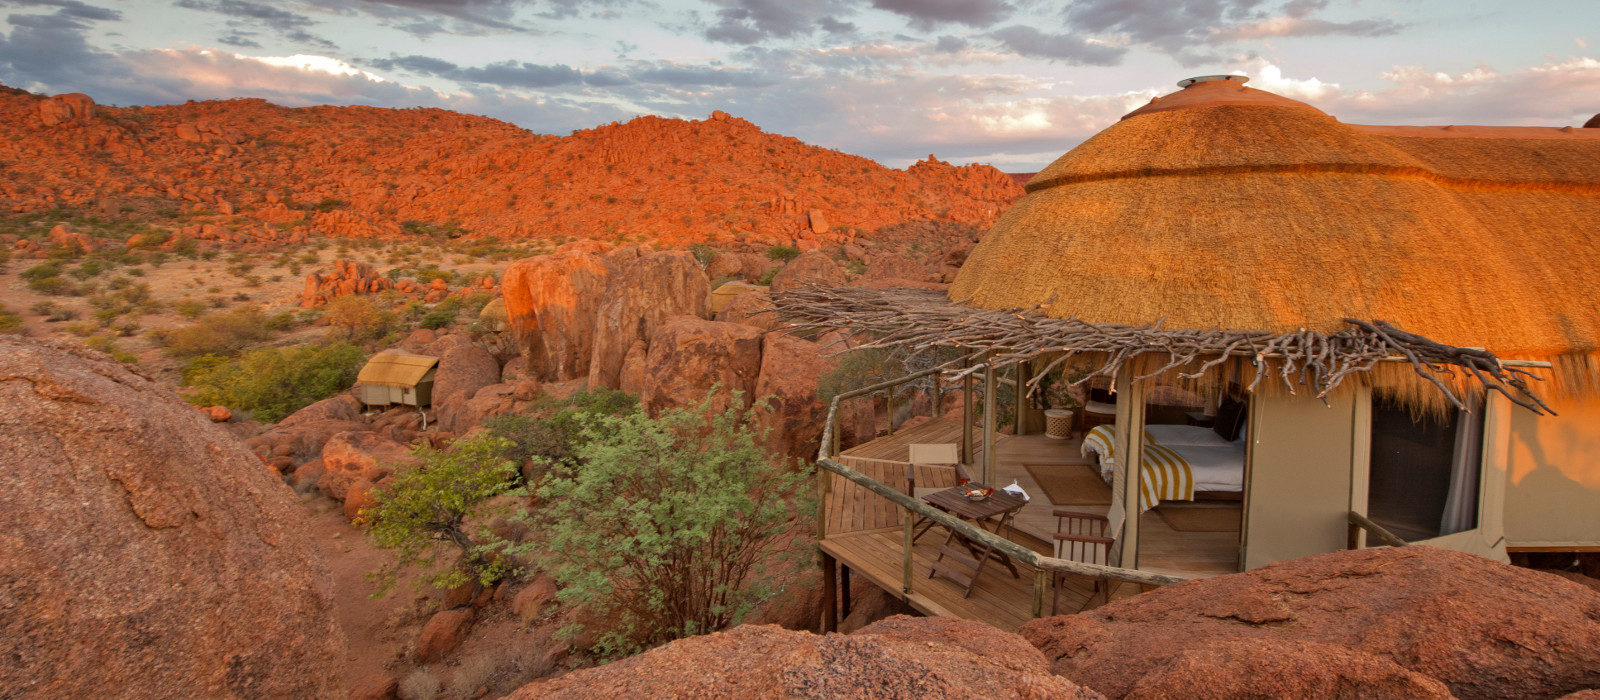 Hotel Mowani Mountain Camp Namibia